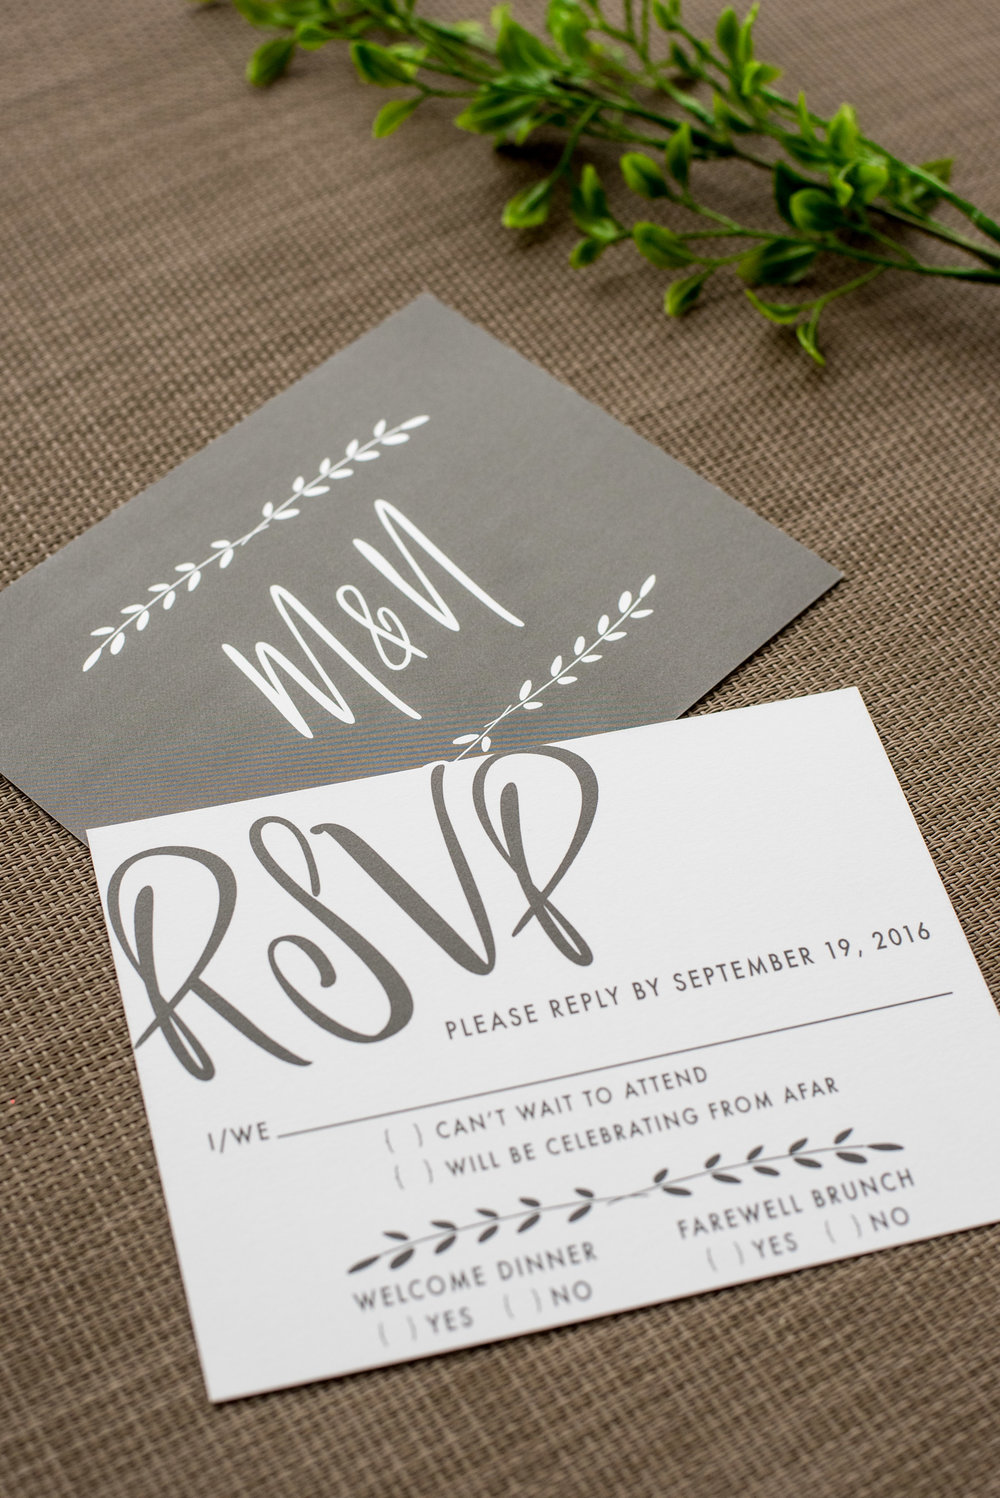 Industrial Chic Wedding Invitation by Ashley Parker Creative on Kraft Paper with Charcoal and Fern Accents, a Monogram Tag, and Printed Bellyband. RSVP Card.